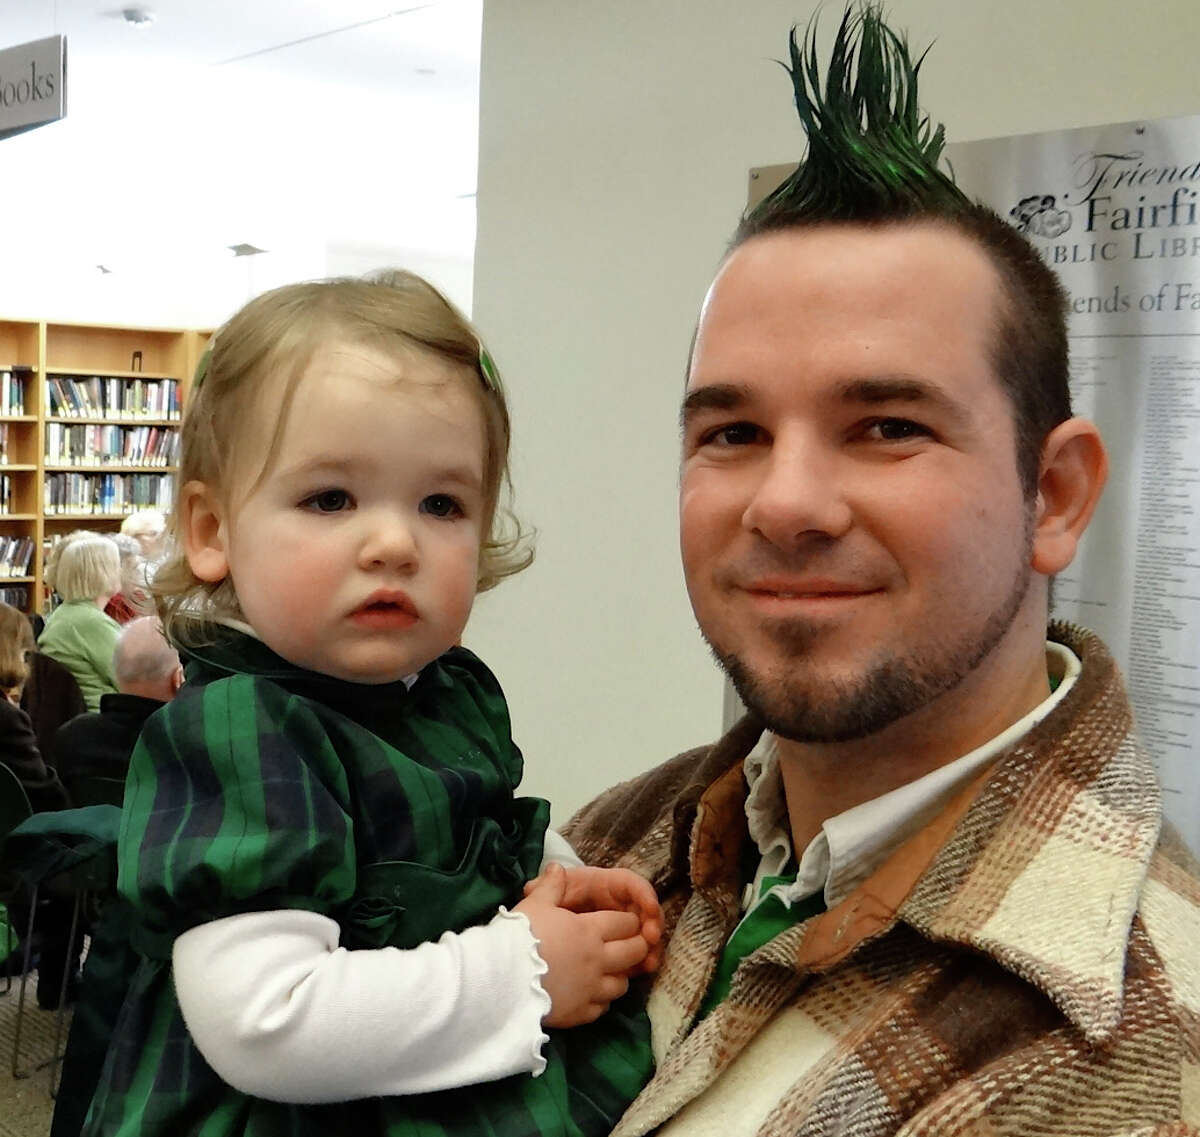 Liam Thidemann of Fairfield and daughter Beibhinn at a St. Patrick's Day musical program by Sally and Damian Connolly at ther Fairfield Public Library. FAIRFIELD CITIZEN, CT 3/17/13